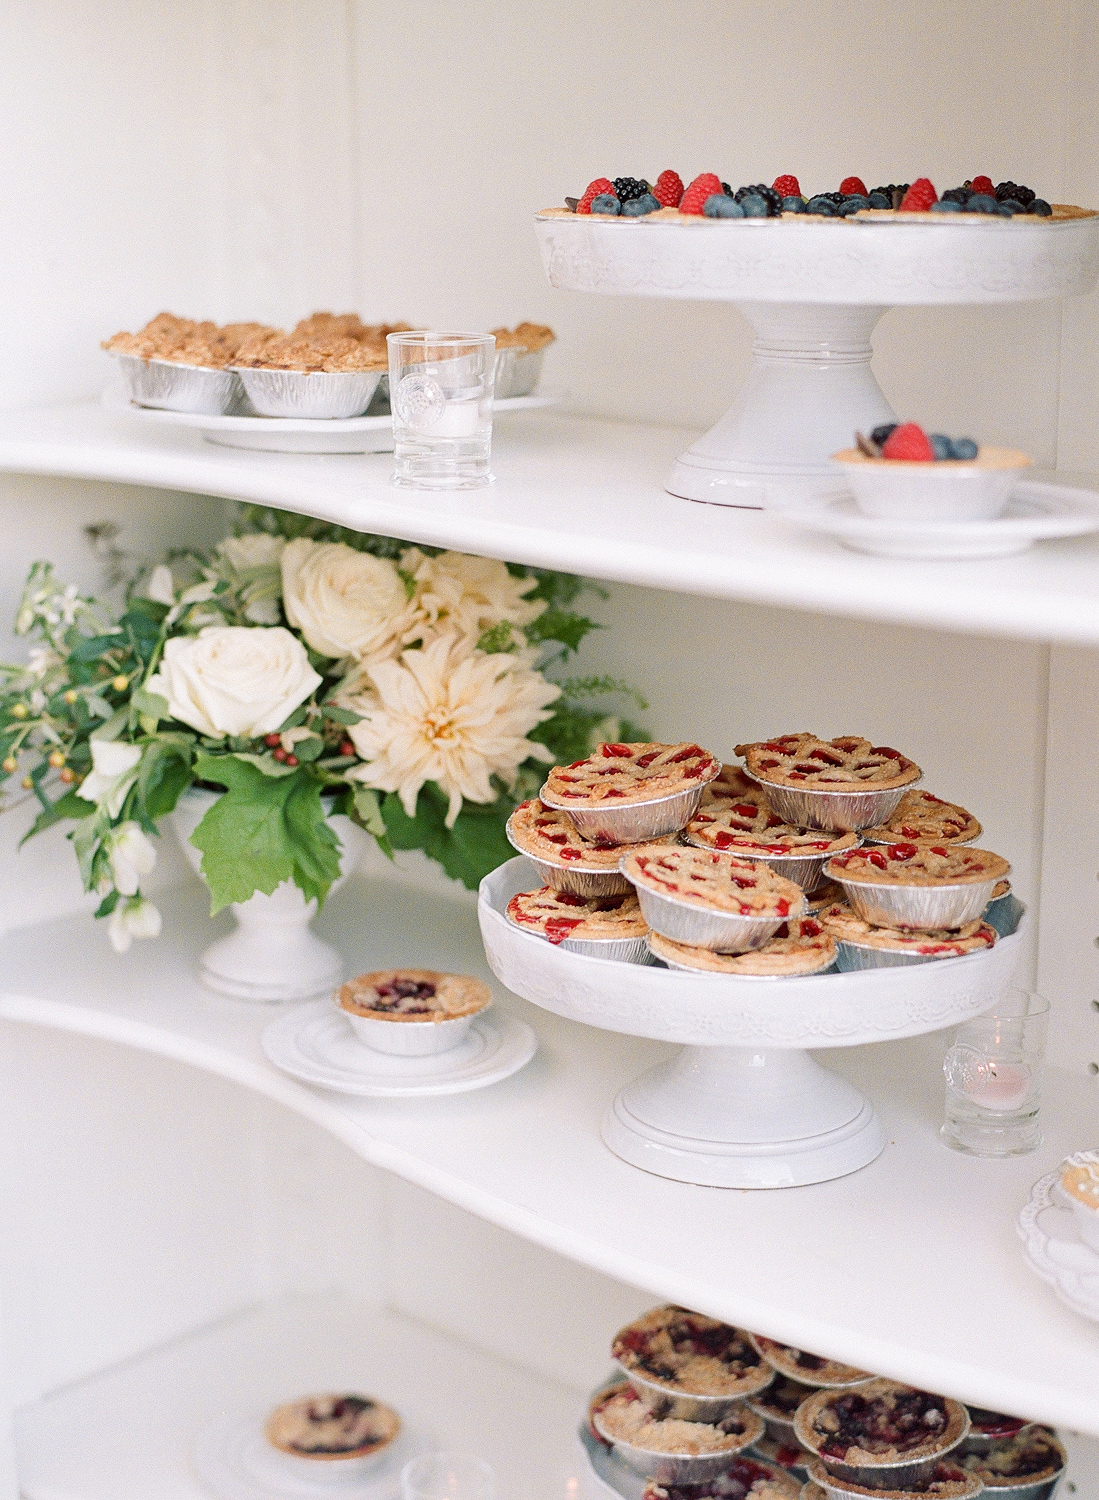 Natalie and Grant wedding miniature pies on shelf near flowers